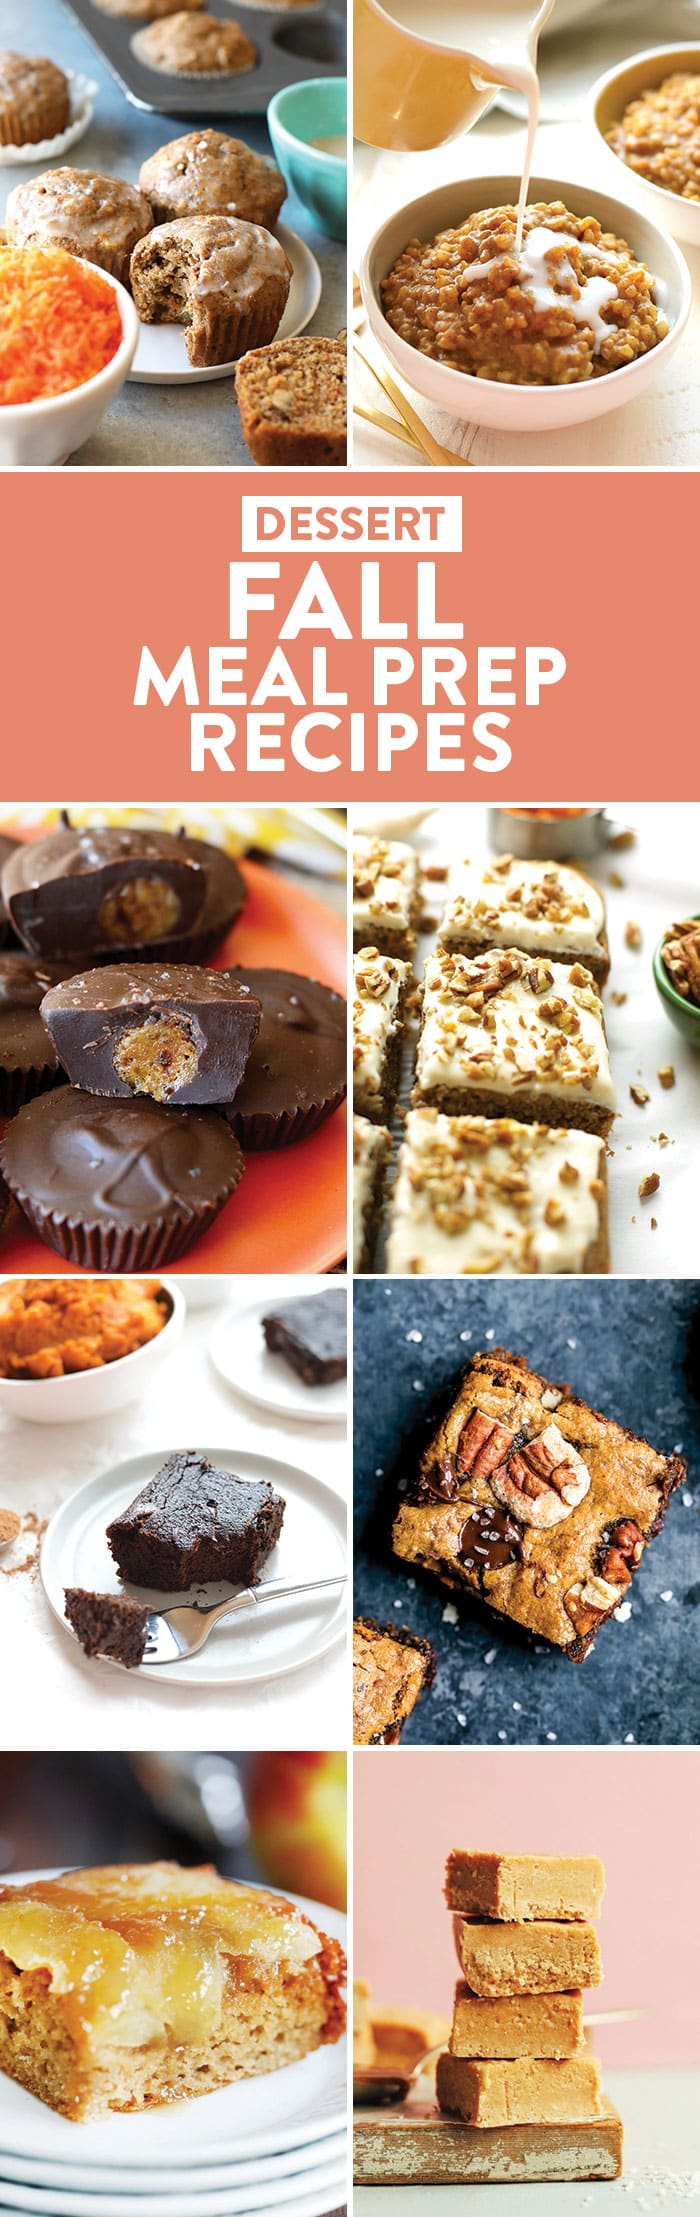 photo collage of dessert recipes